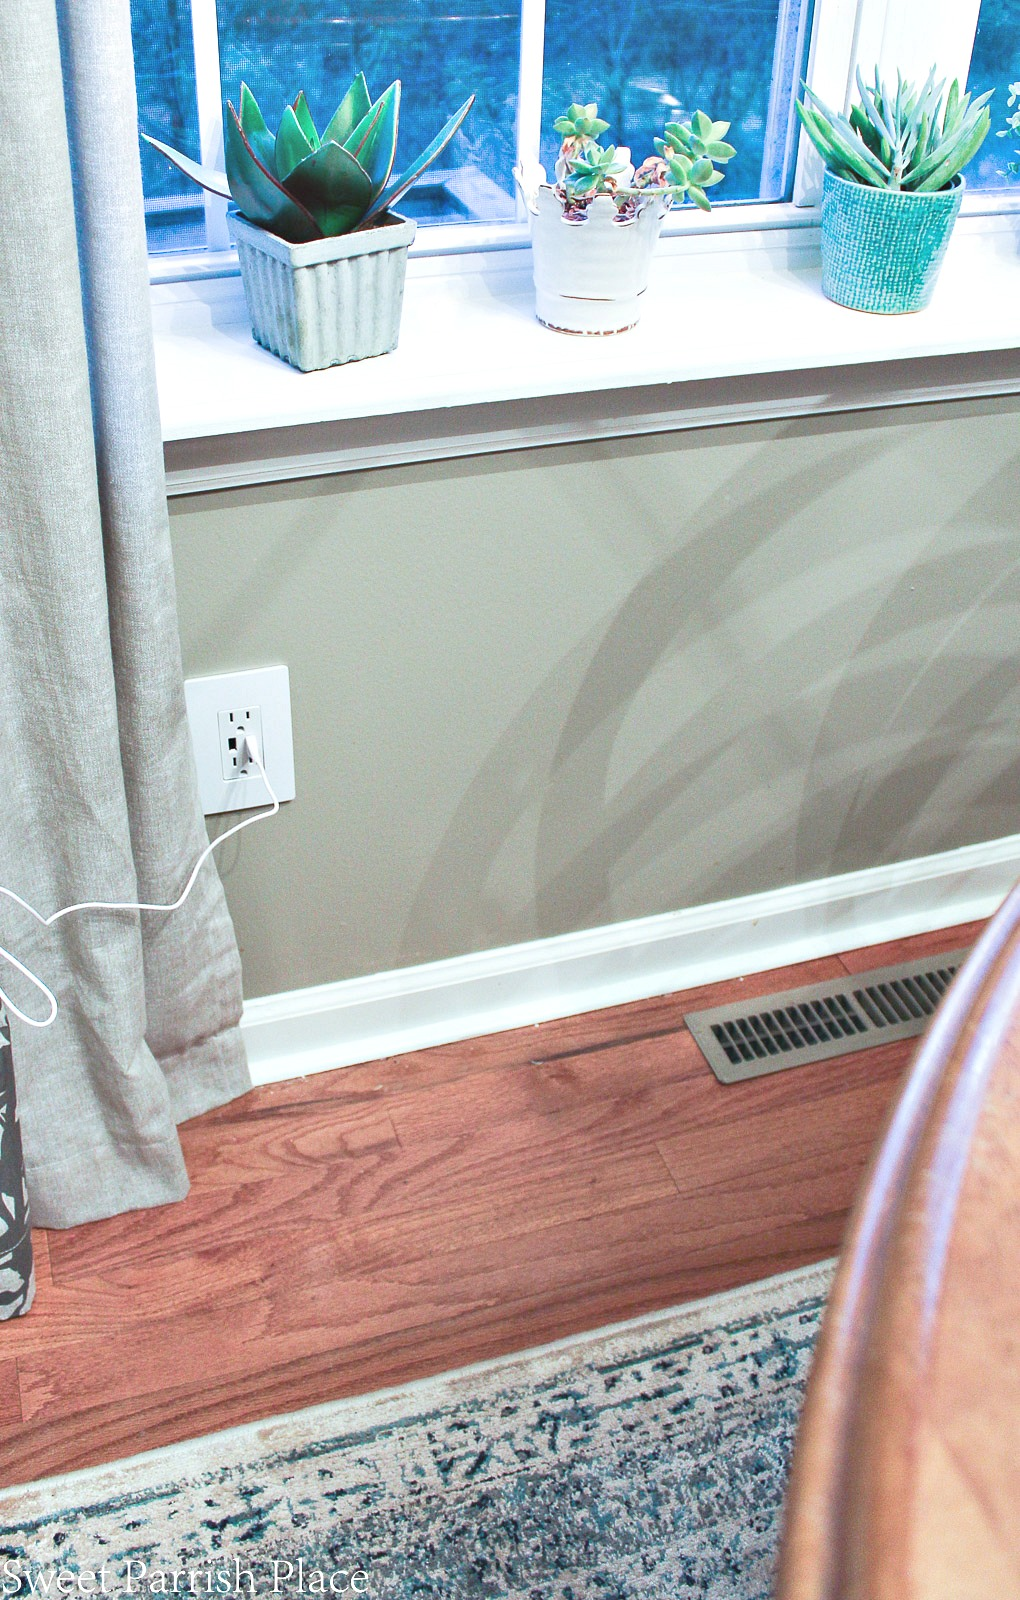 electric outlets with USB ports